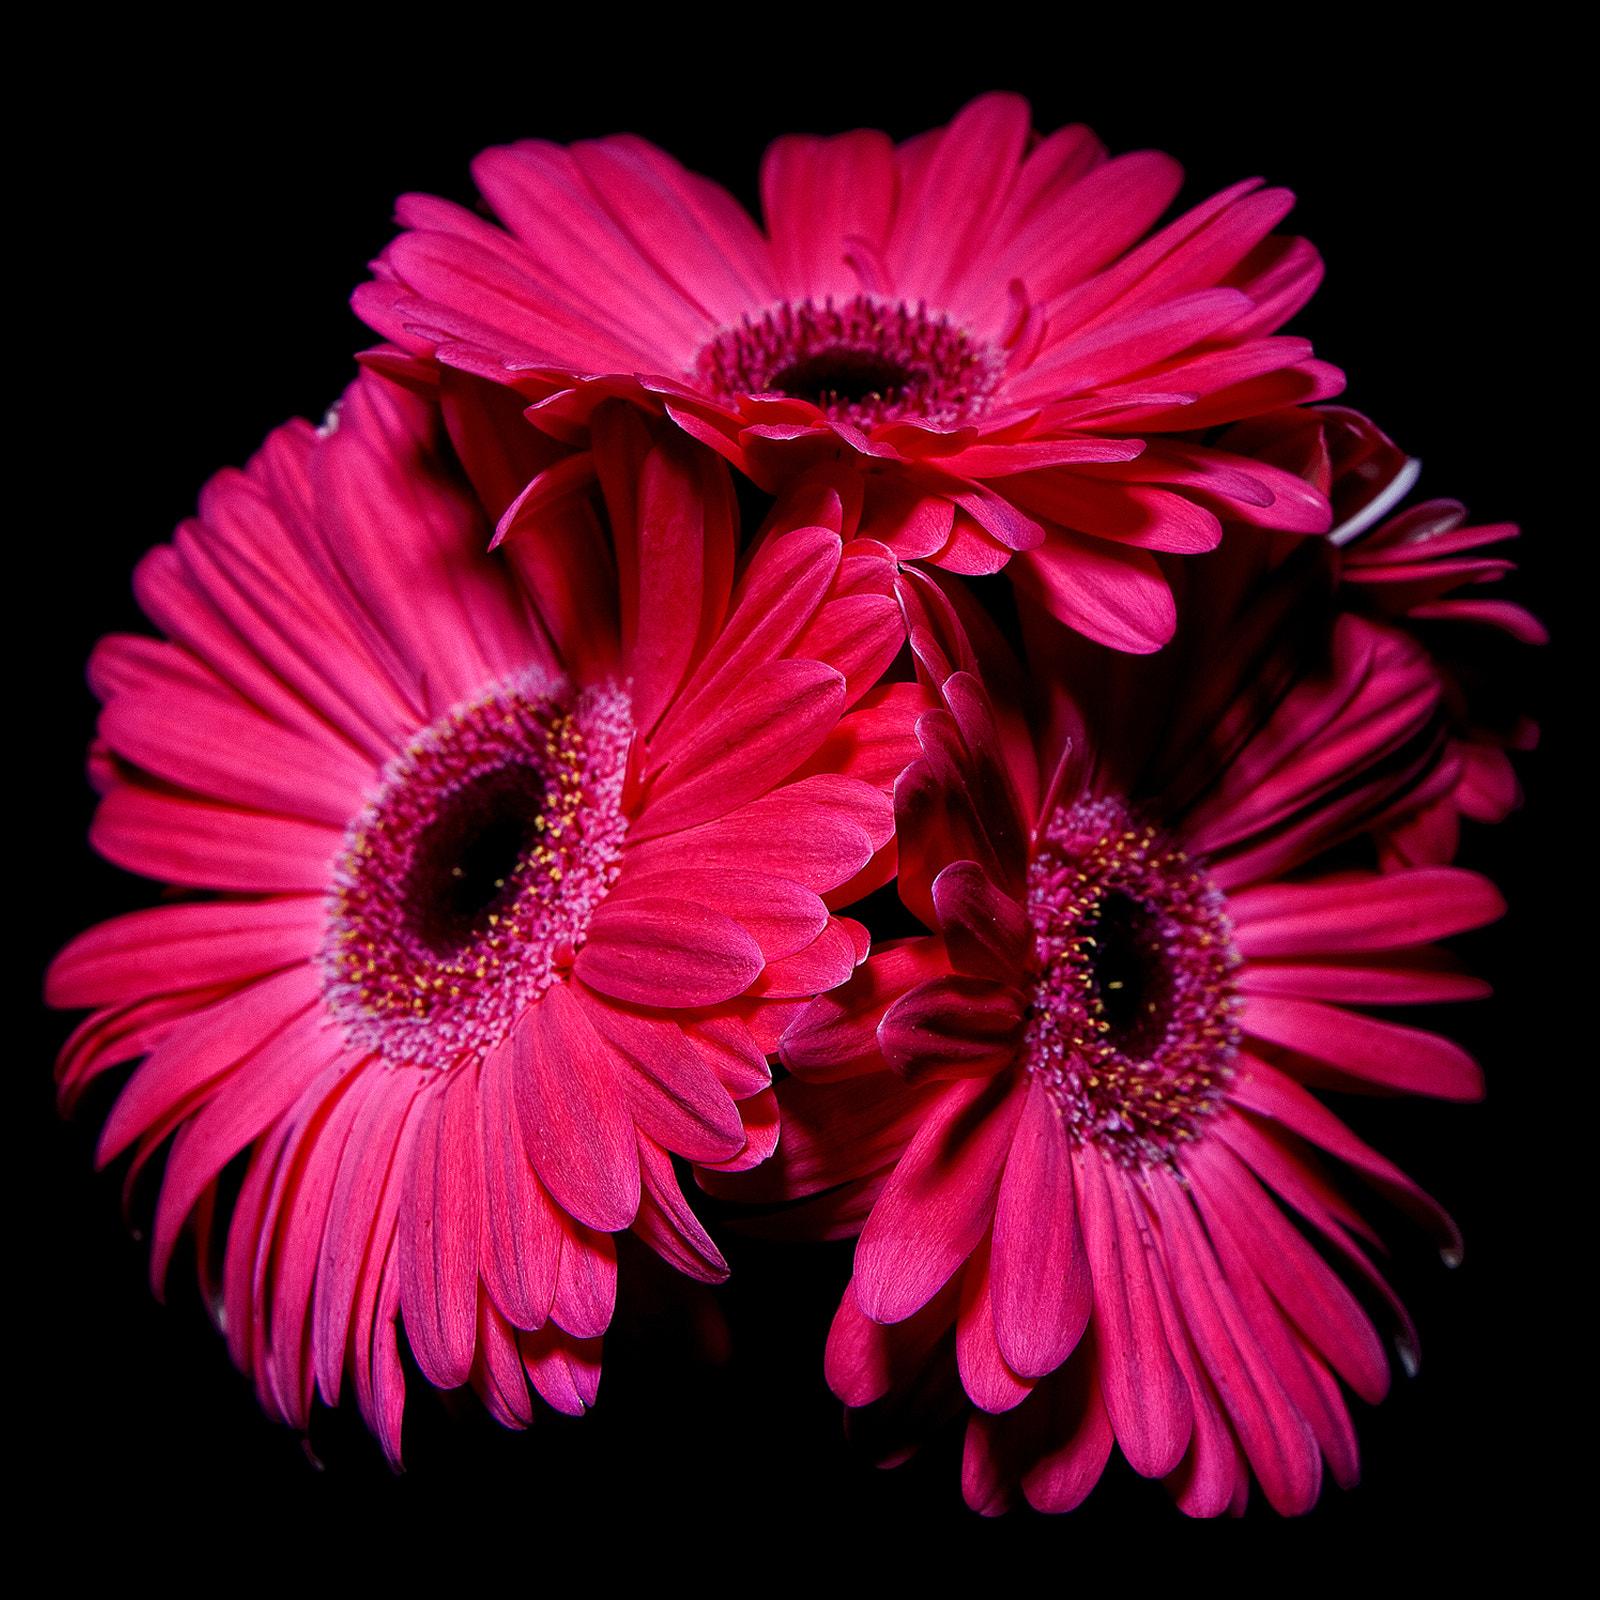 Photograph Pink Gerbera closeup by childress photography on 500px